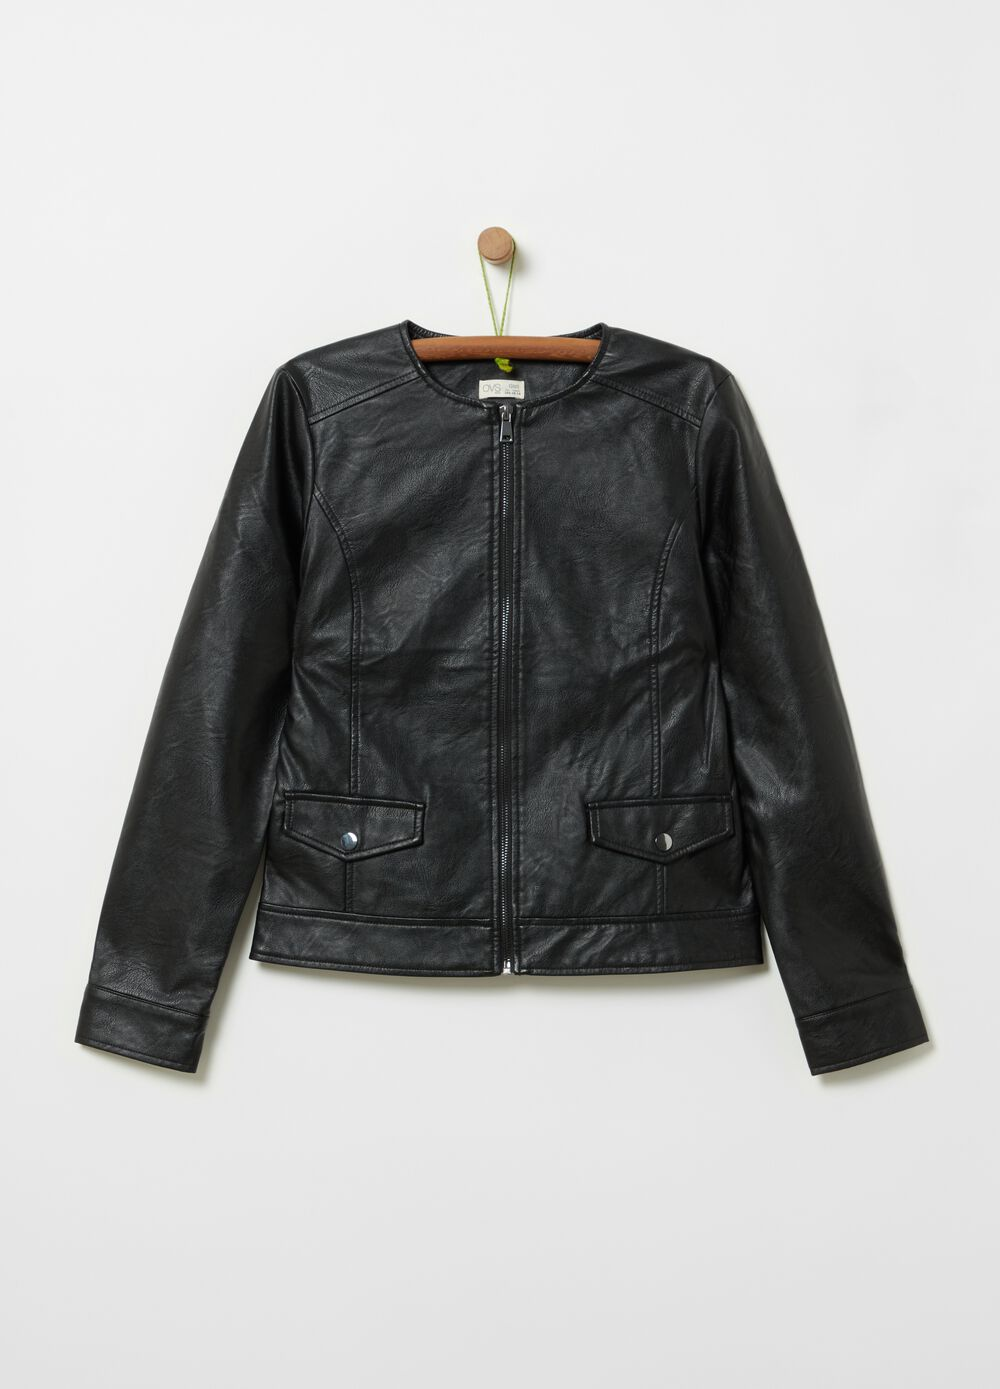 Faux leather jacket with pockets